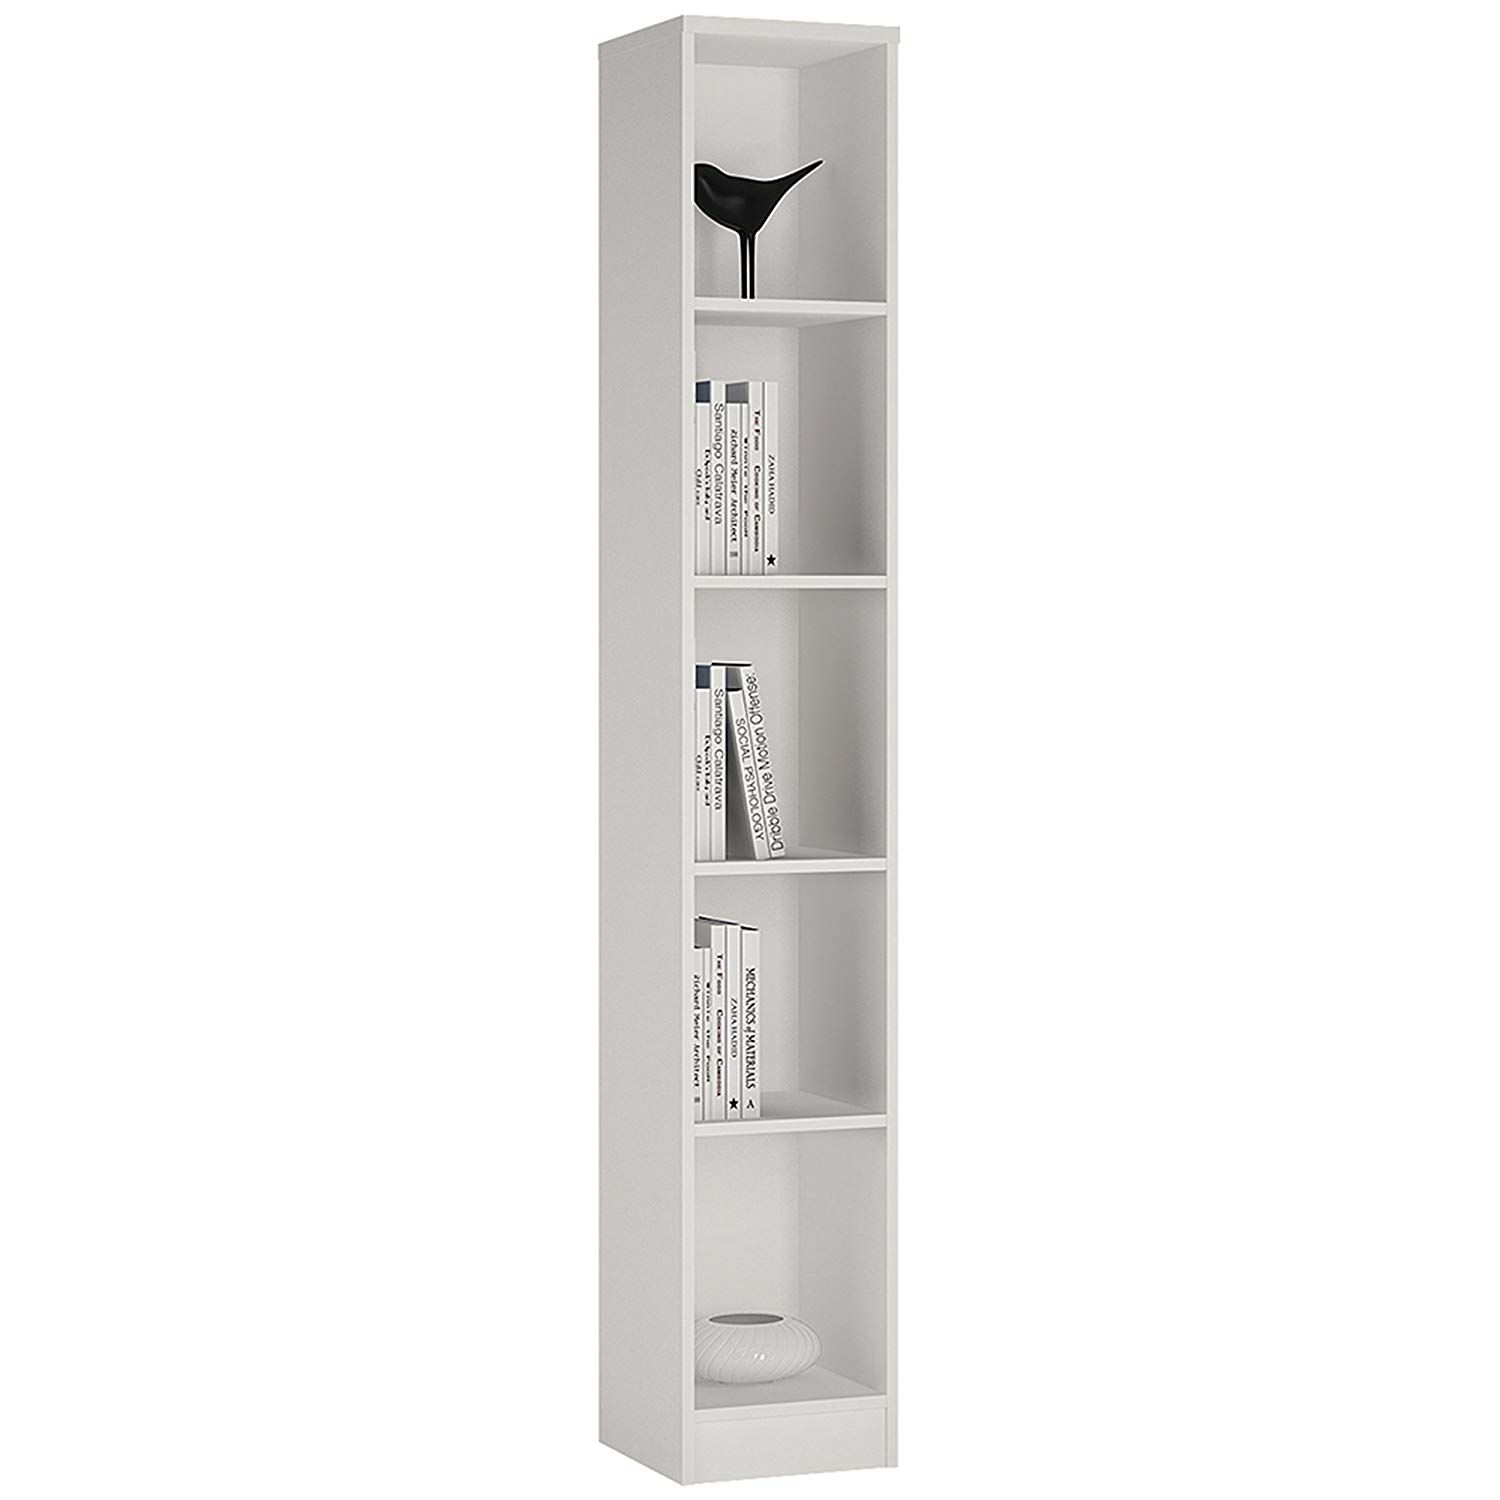 P N Homewares Crescita Tall Narrow Bookcase In White Bookshelf Living Room Furniture 30cm Wide Amazon Co Tall Narrow Bookcase Bookcase Narrow Bookshelf